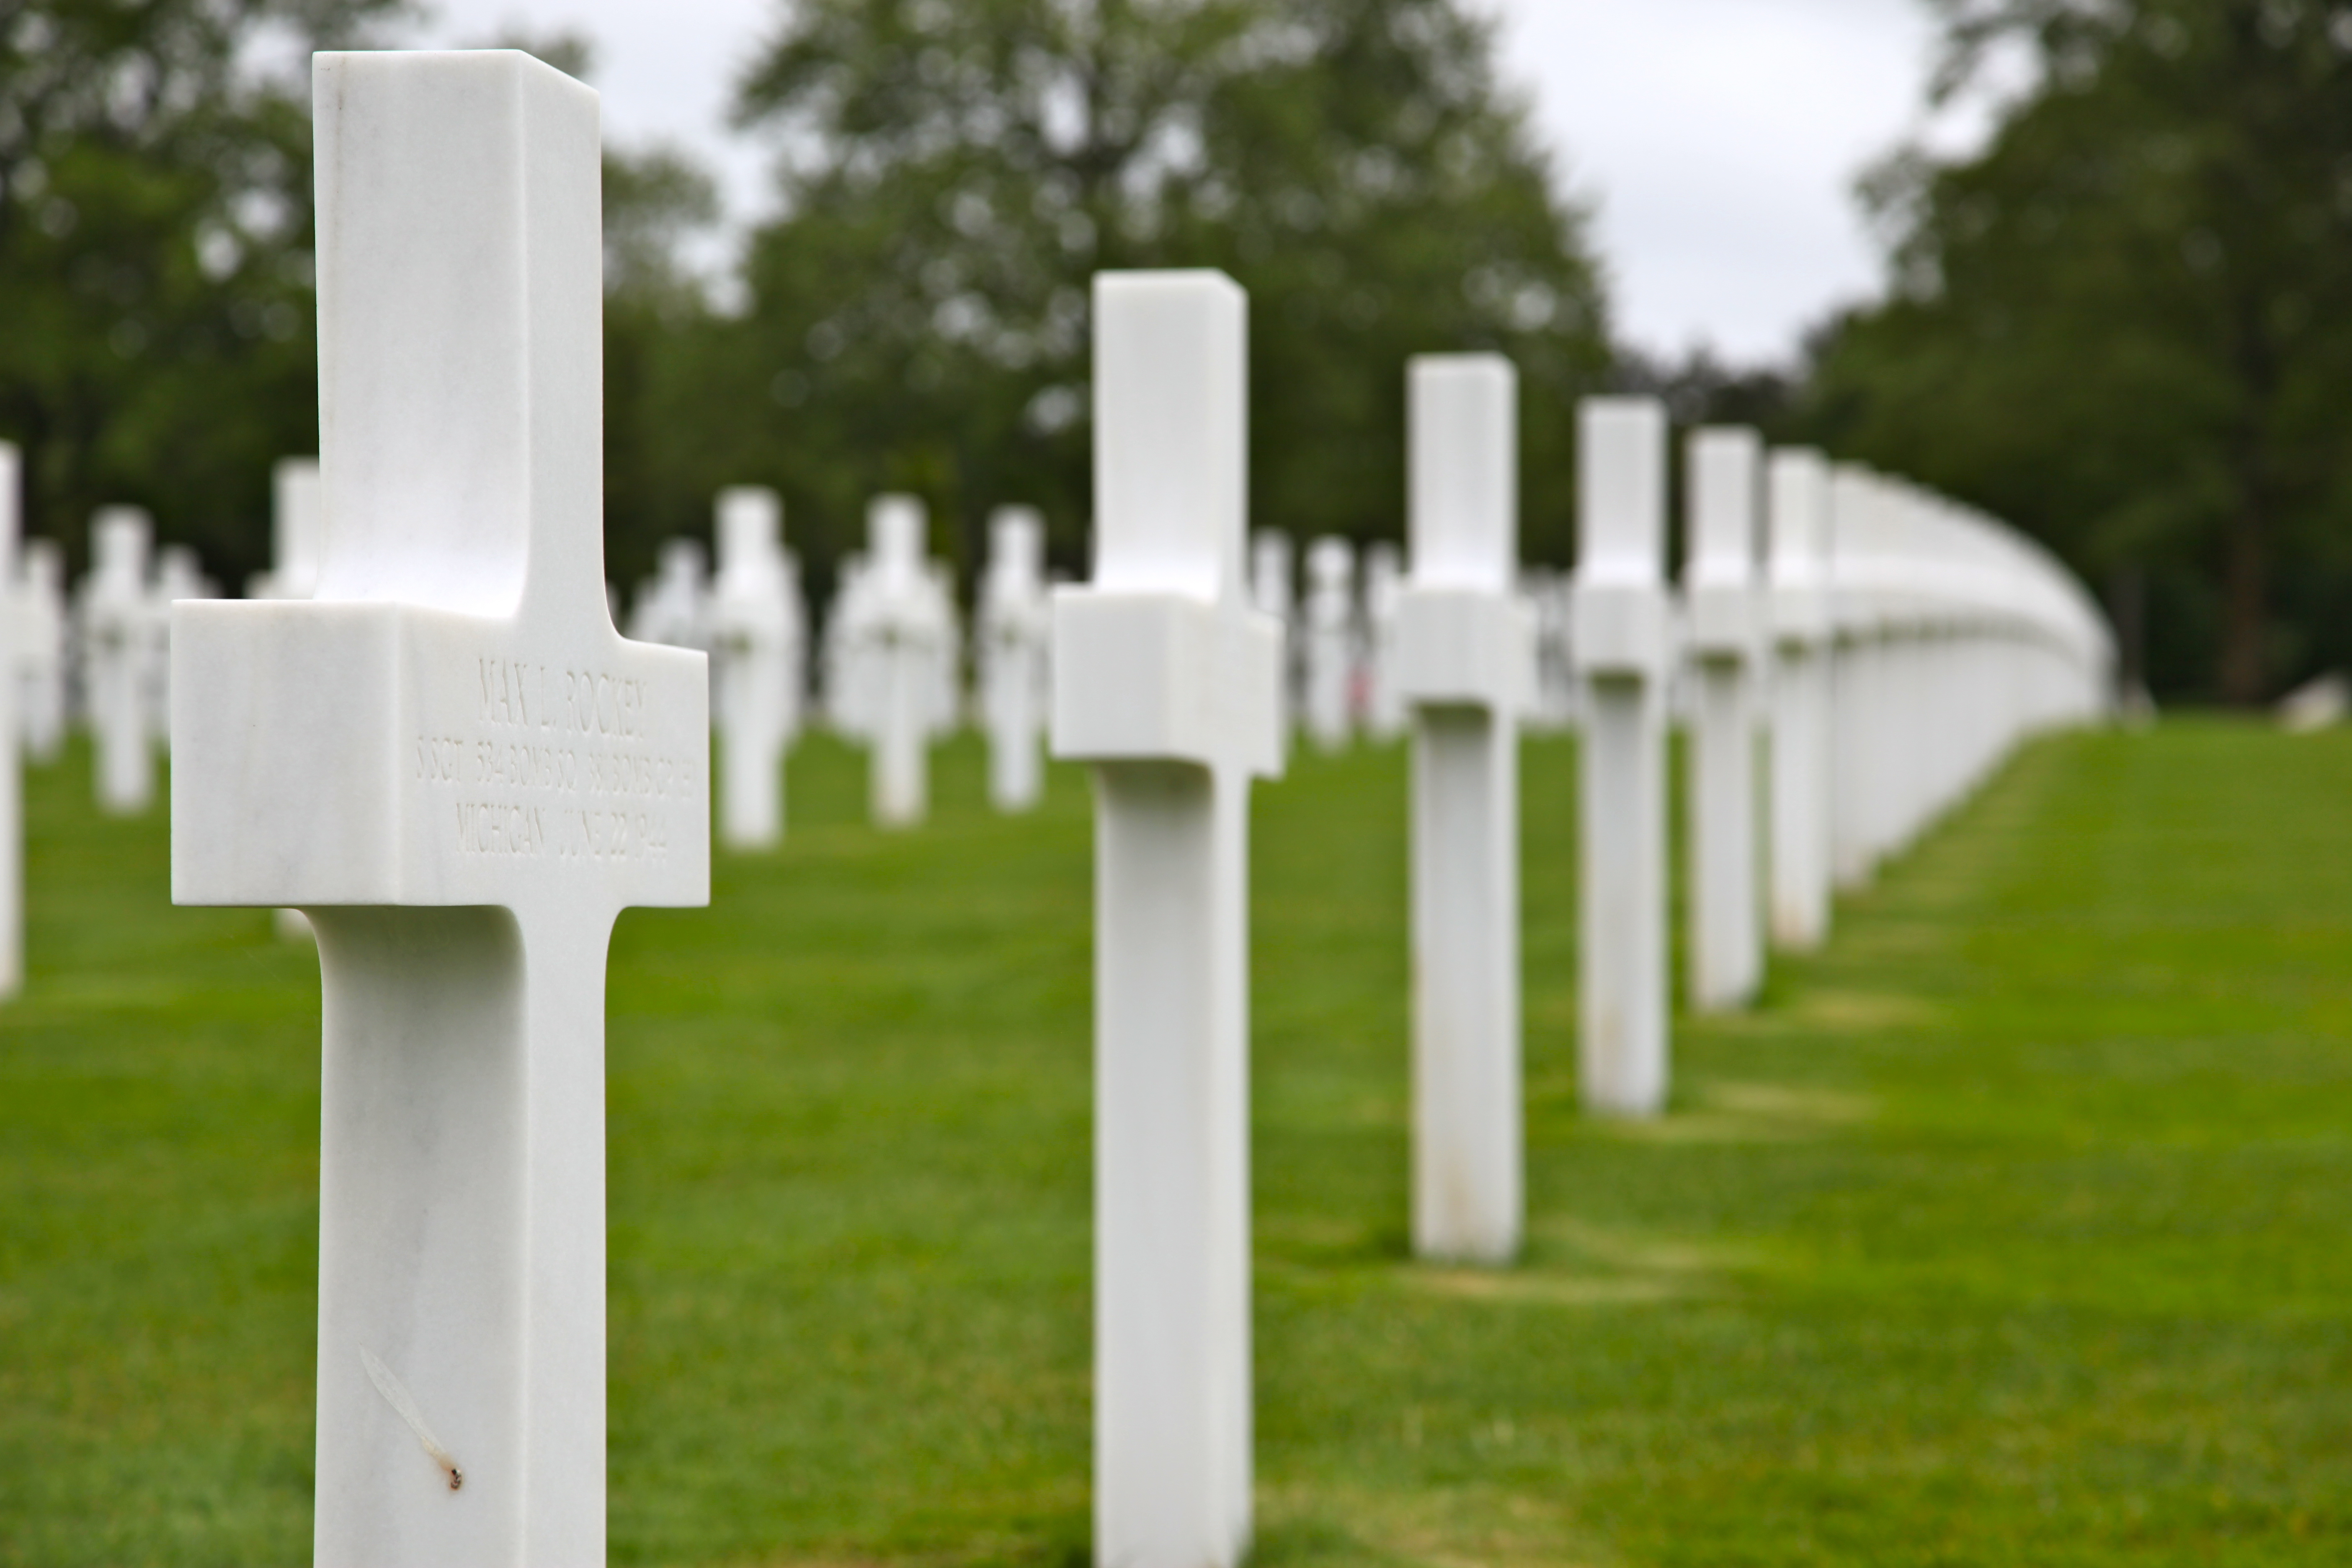 Caption: U.S. Military service members are represented by white headstones for the men that lost their lives during World War II at the American Cemetery, Normandy, France; June 2, 2015. This is the 71st Anniversary of the D-Day invasion of Normandy remembering th, Credit: (U.S. Army photo by Sgt. Austin Berner/Released)